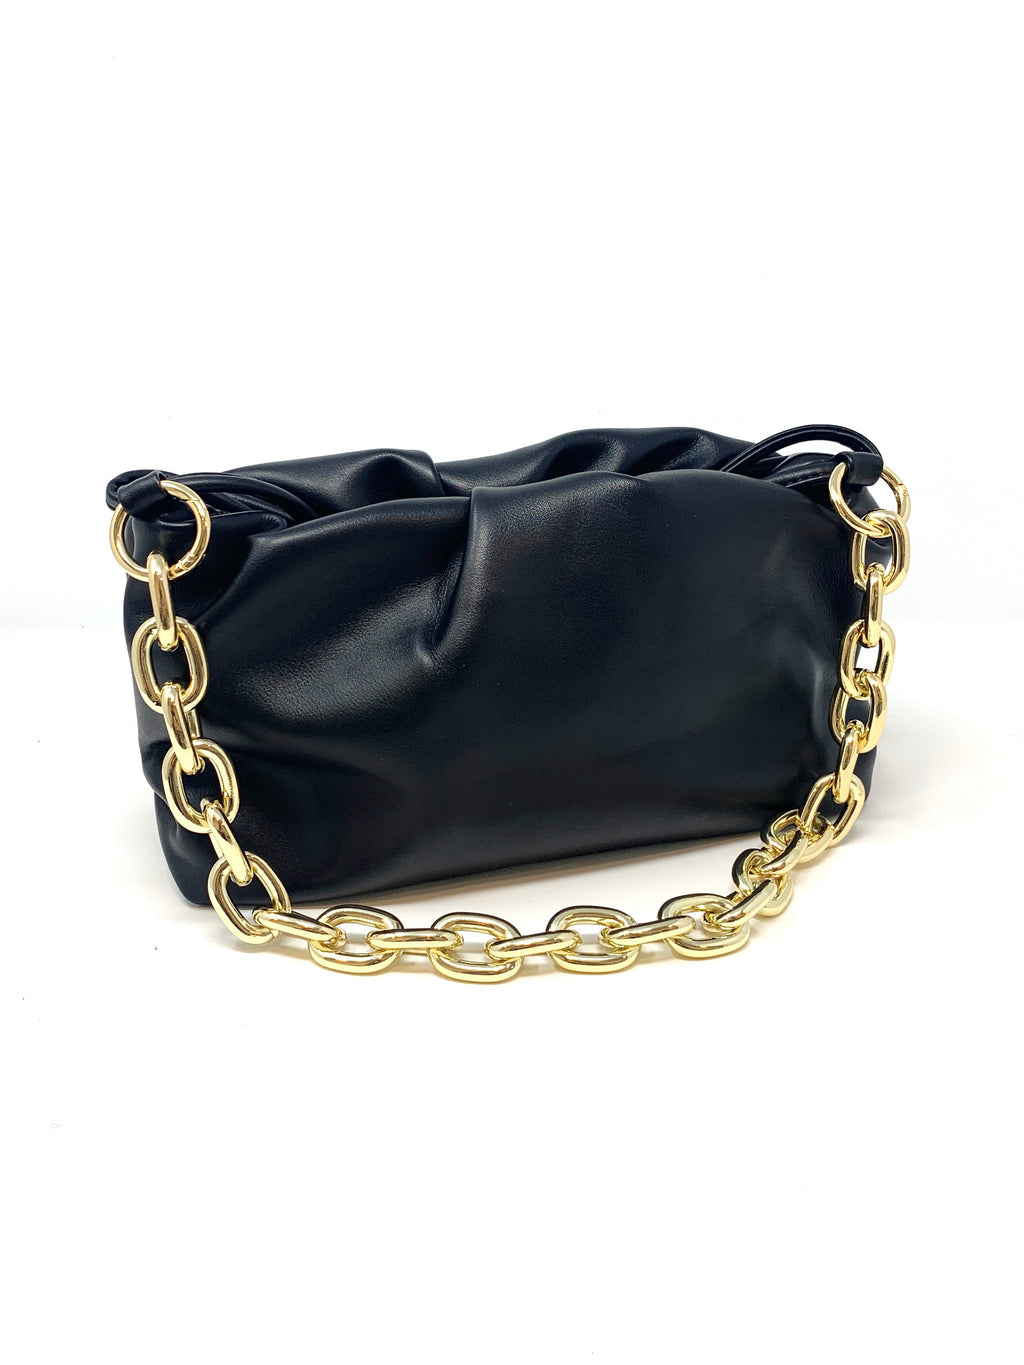 Pouch Bag with Chunky Chain and Crossbody Strap in Black